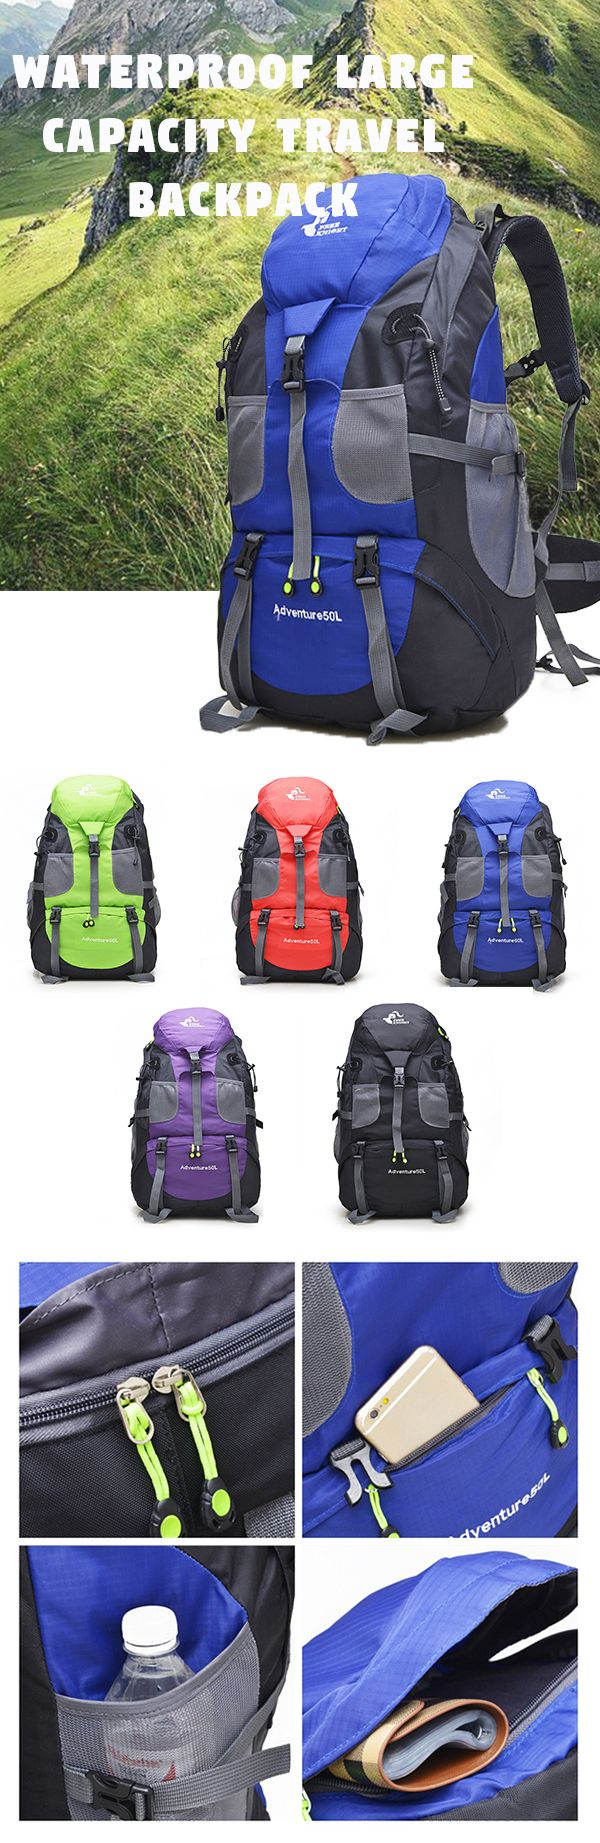 US$31.06 Outdoor Travel Backpack For Men Women_50L Waterproof Polyester Large Capacity  BAG